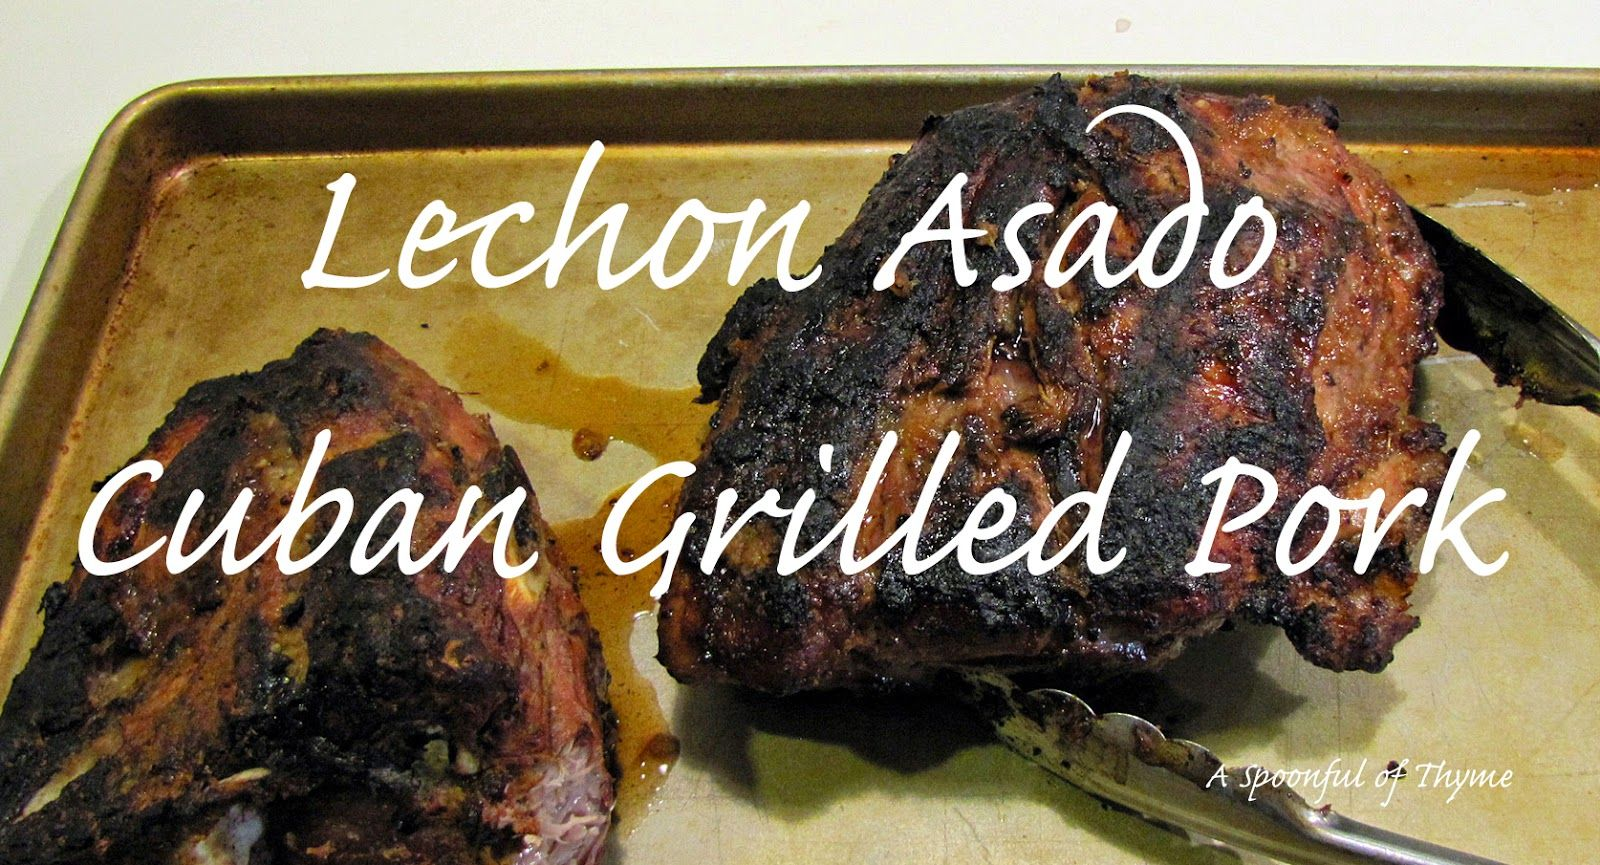 A Spoonful of Thyme: Lechon Asado - Cuban Grilled Pork